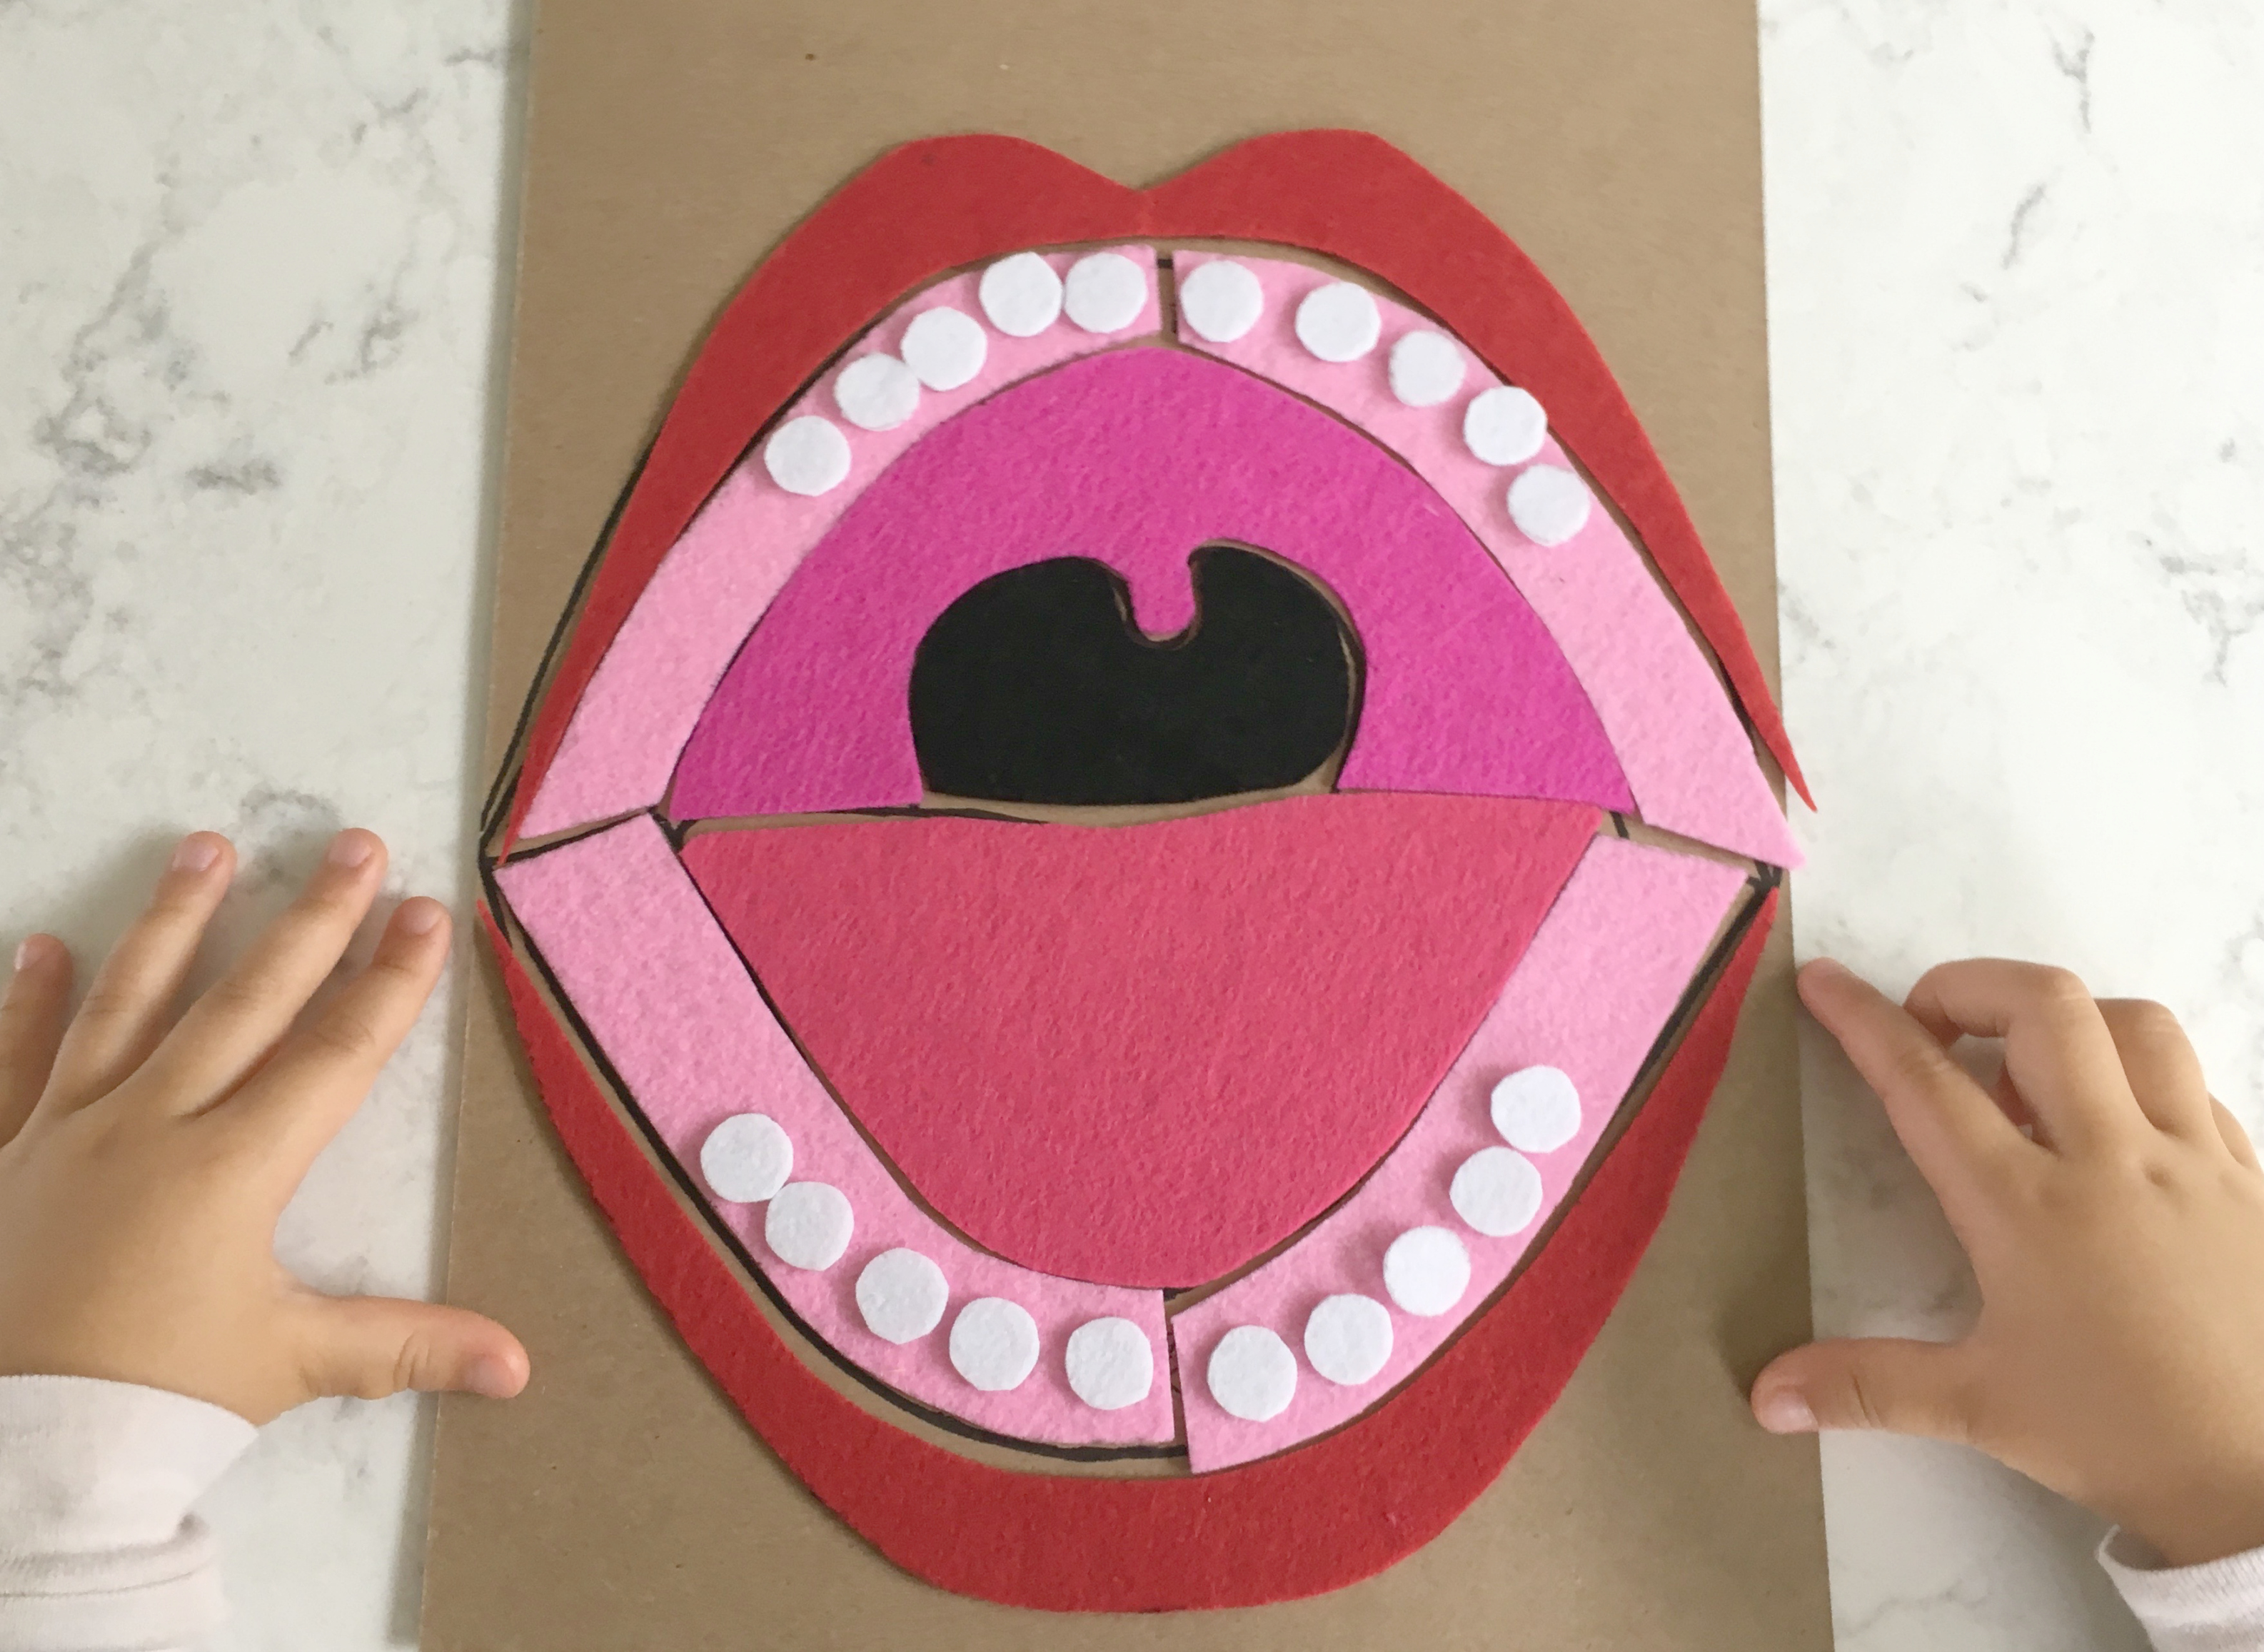 Chinese Activities For Kids  Diy Mouth Puzzle With Free